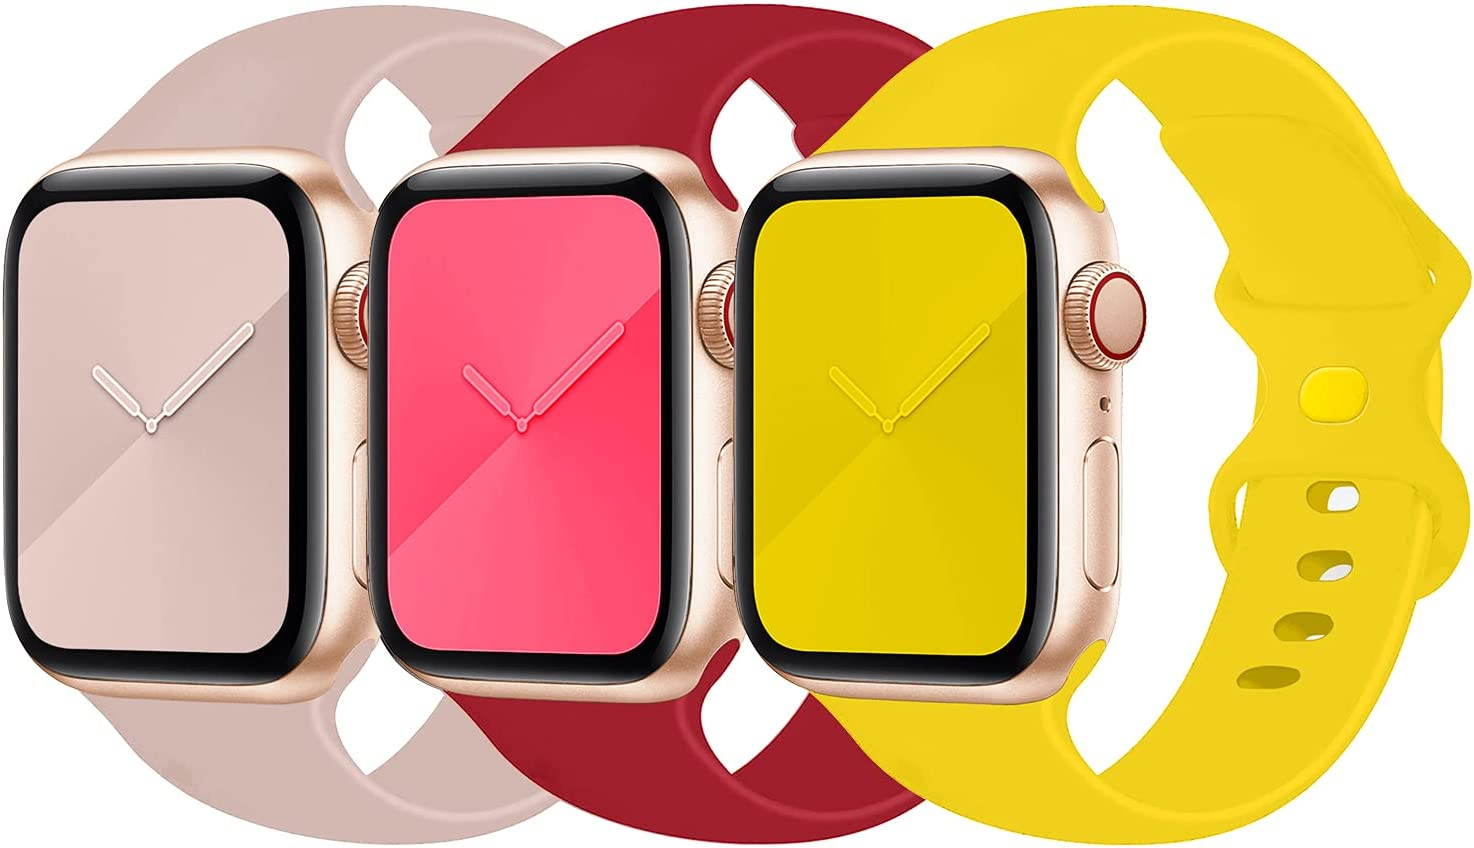 LANGXIAN 3 Pack Sport Bands Compatible with Apple Watch Band 38mm 40mm 42mm 44mm, Soft Silicone Replacement Strap Compatible for Apple iwatch Series 6/5/4/3/2/1/SE